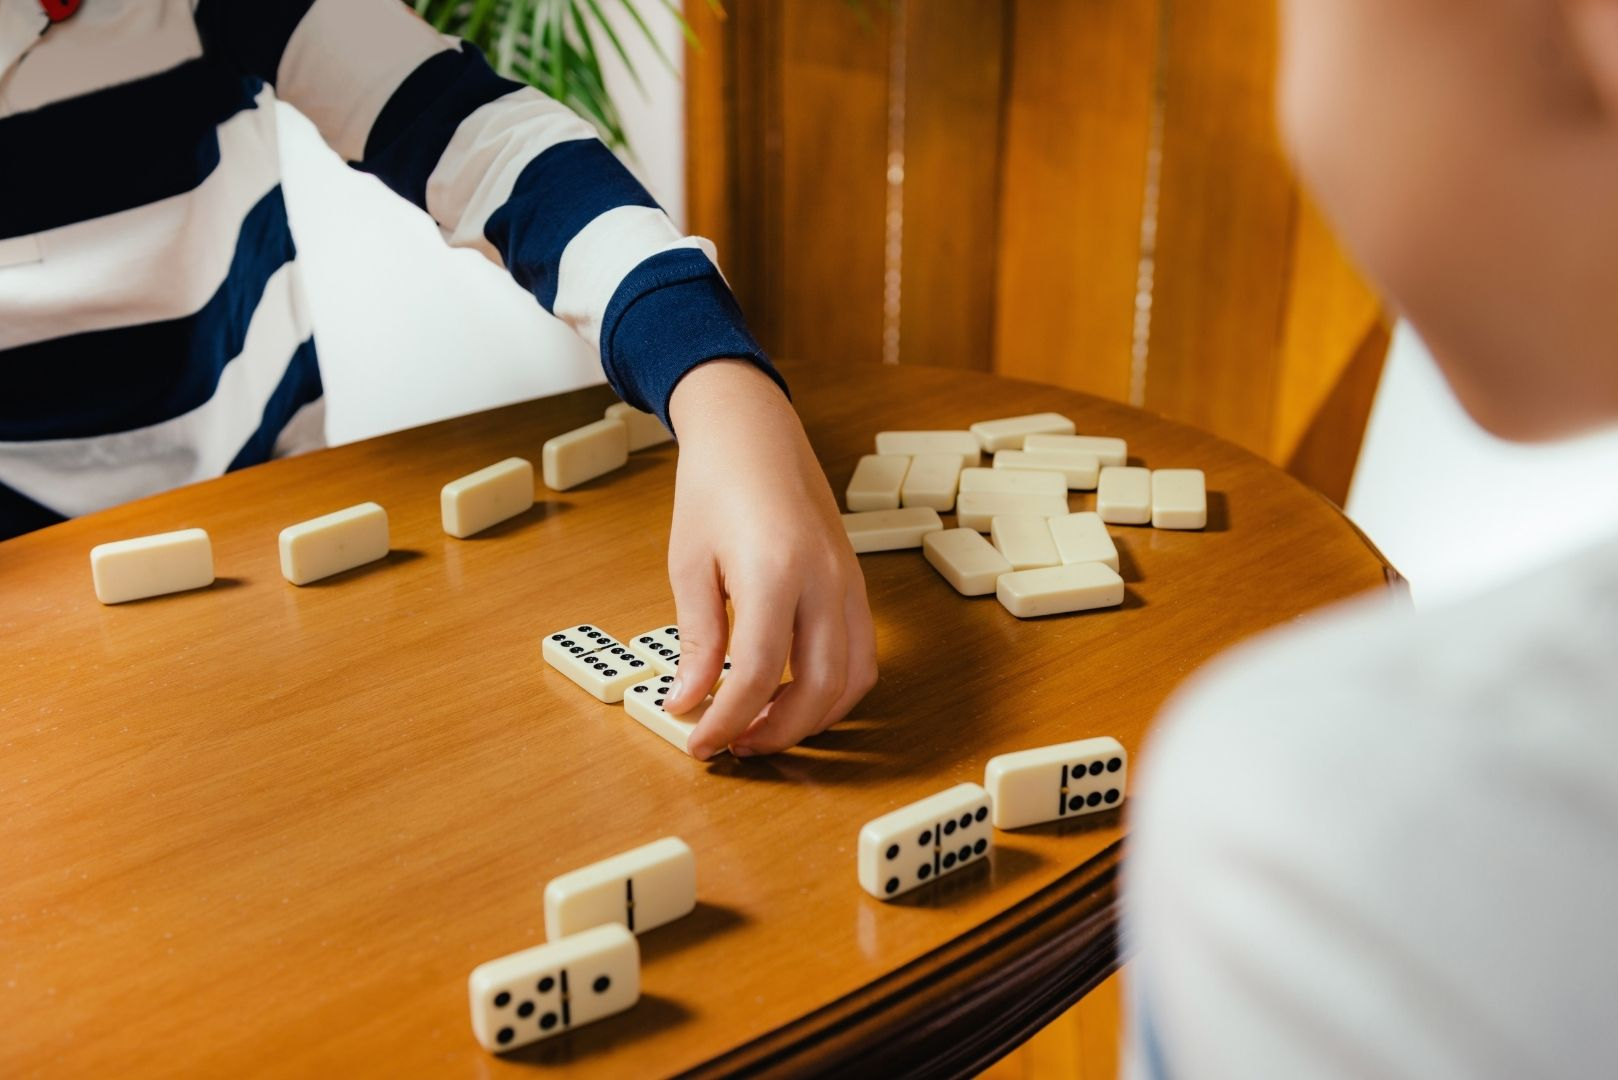 Kids playing with educational toy dominoes